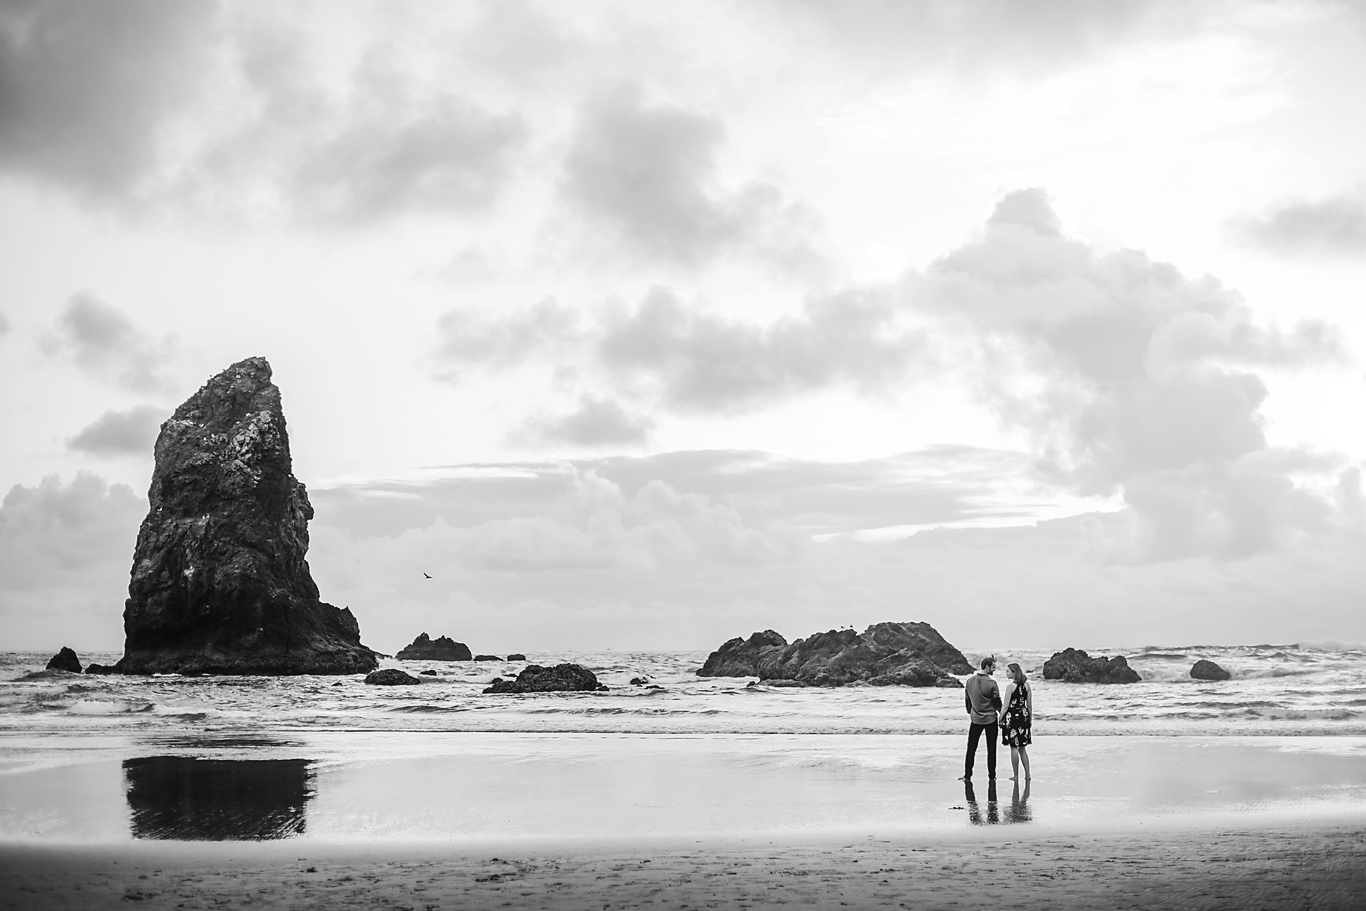 Amanda + Matt - Oregon Coast Engagement Photographer - Destination Elopement Photographer - Emily & Co. Photography (6).jpg